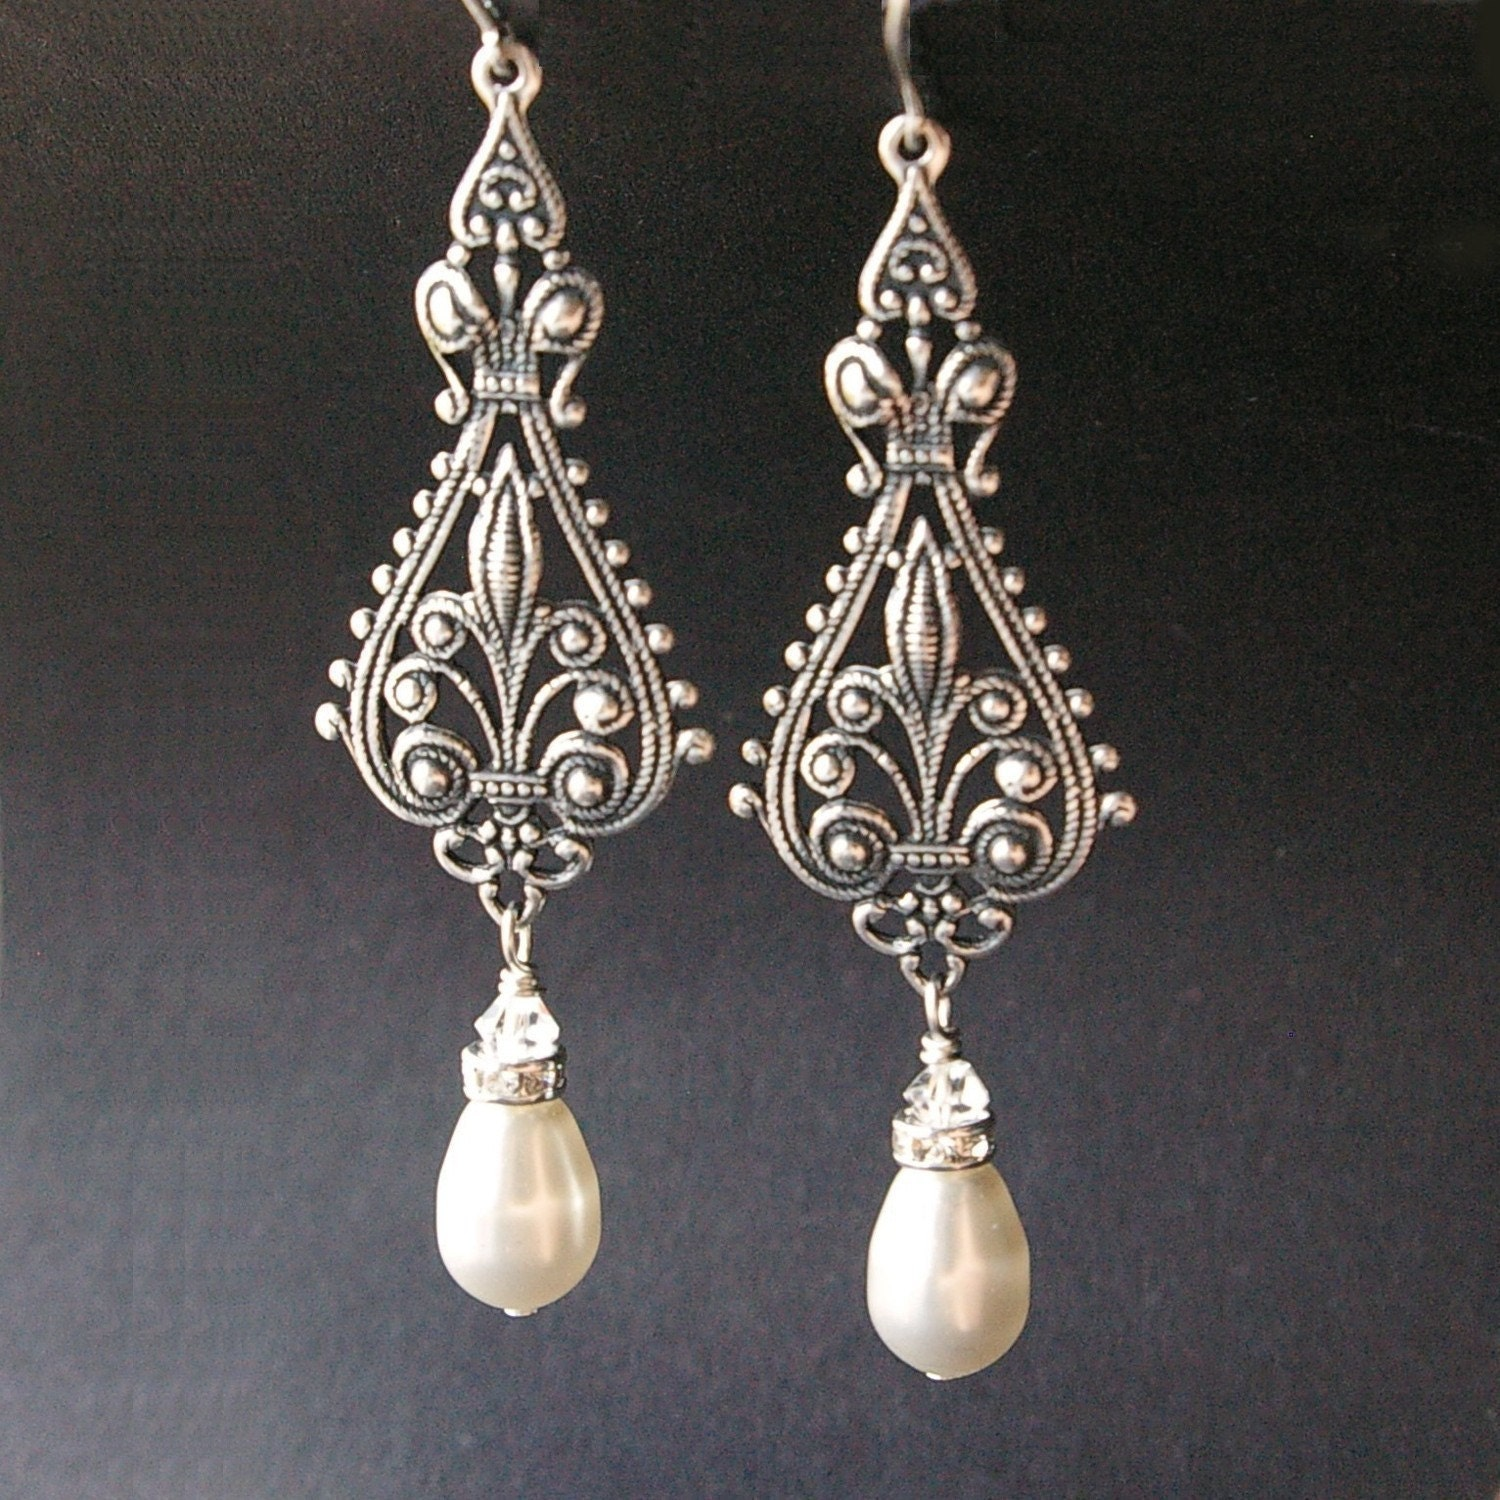 Vintage Bridal Earrings Silver Filigree Earrings By Luxedeluxe